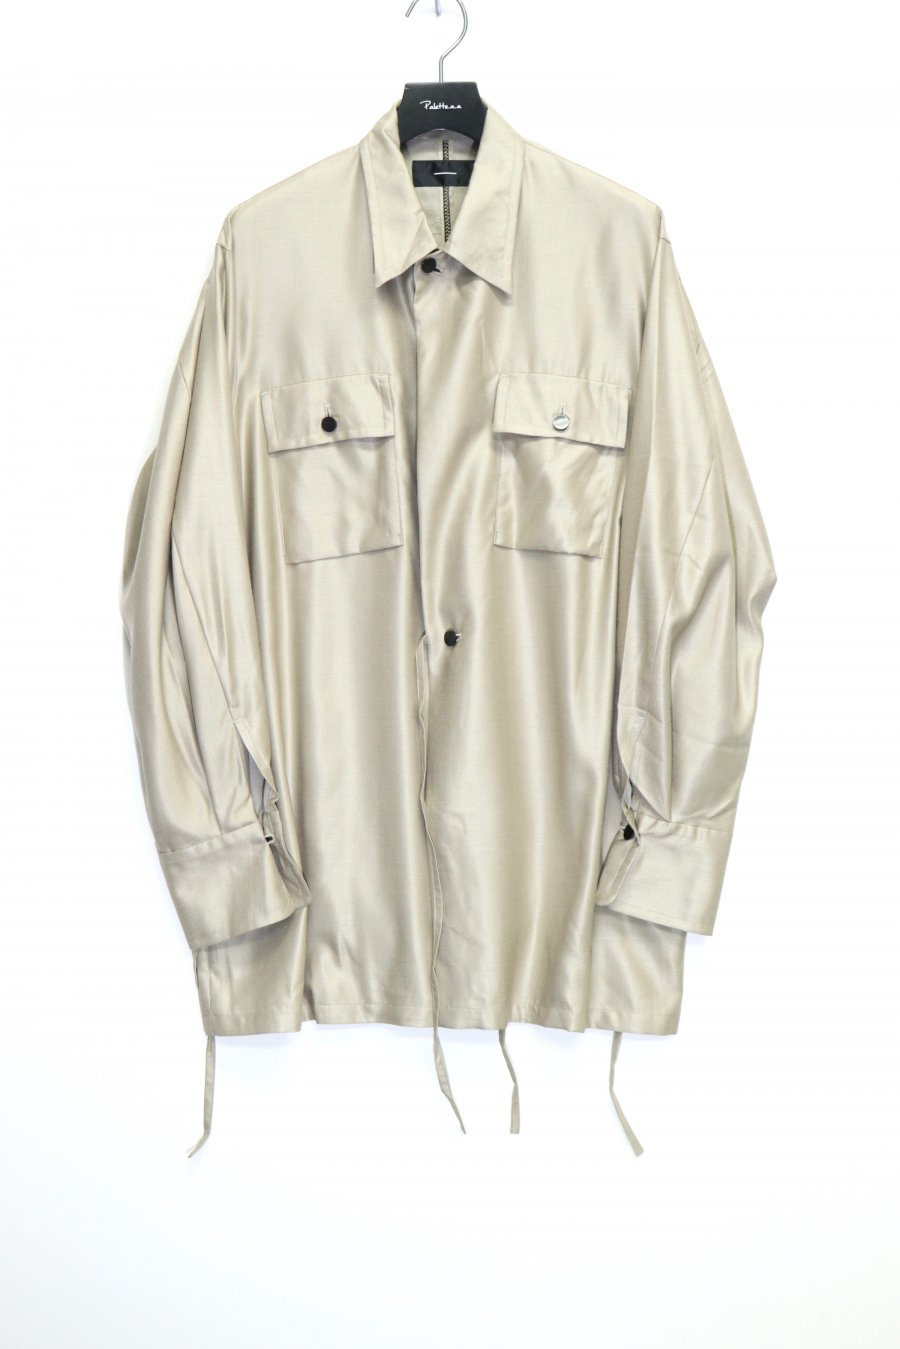 【20%OFF】[ー]Minus   FATIGUE SHIRT JACKET(GOLD)<img class='new_mark_img2' src='https://img.shop-pro.jp/img/new/icons20.gif' style='border:none;display:inline;margin:0px;padding:0px;width:auto;' />